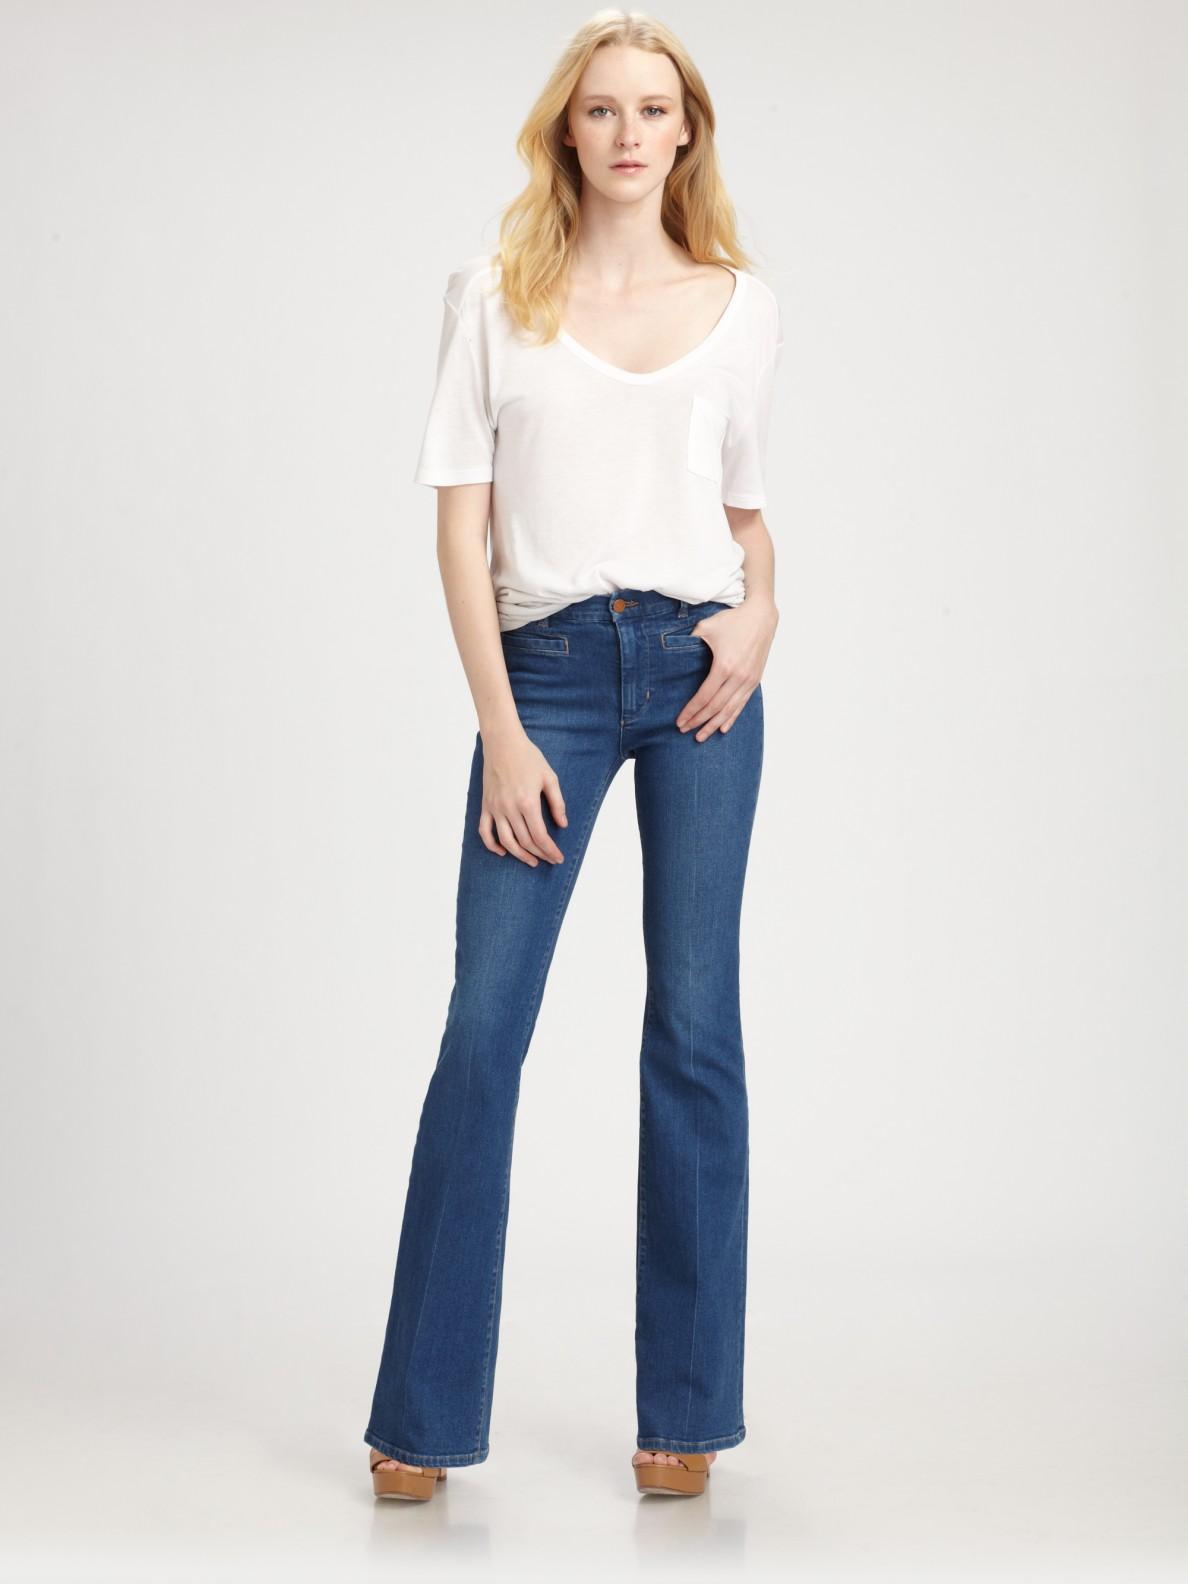 bd4e2fc661f Lyst - M.i.h Jeans Marrakesh Mid-Rise Kick Flare Jeans in Blue